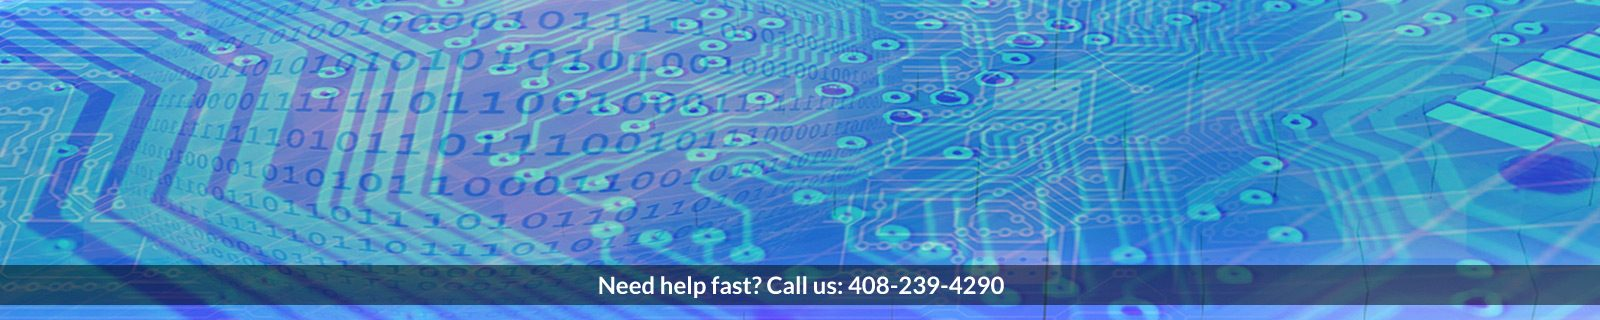 RDL IT Consulting and Service